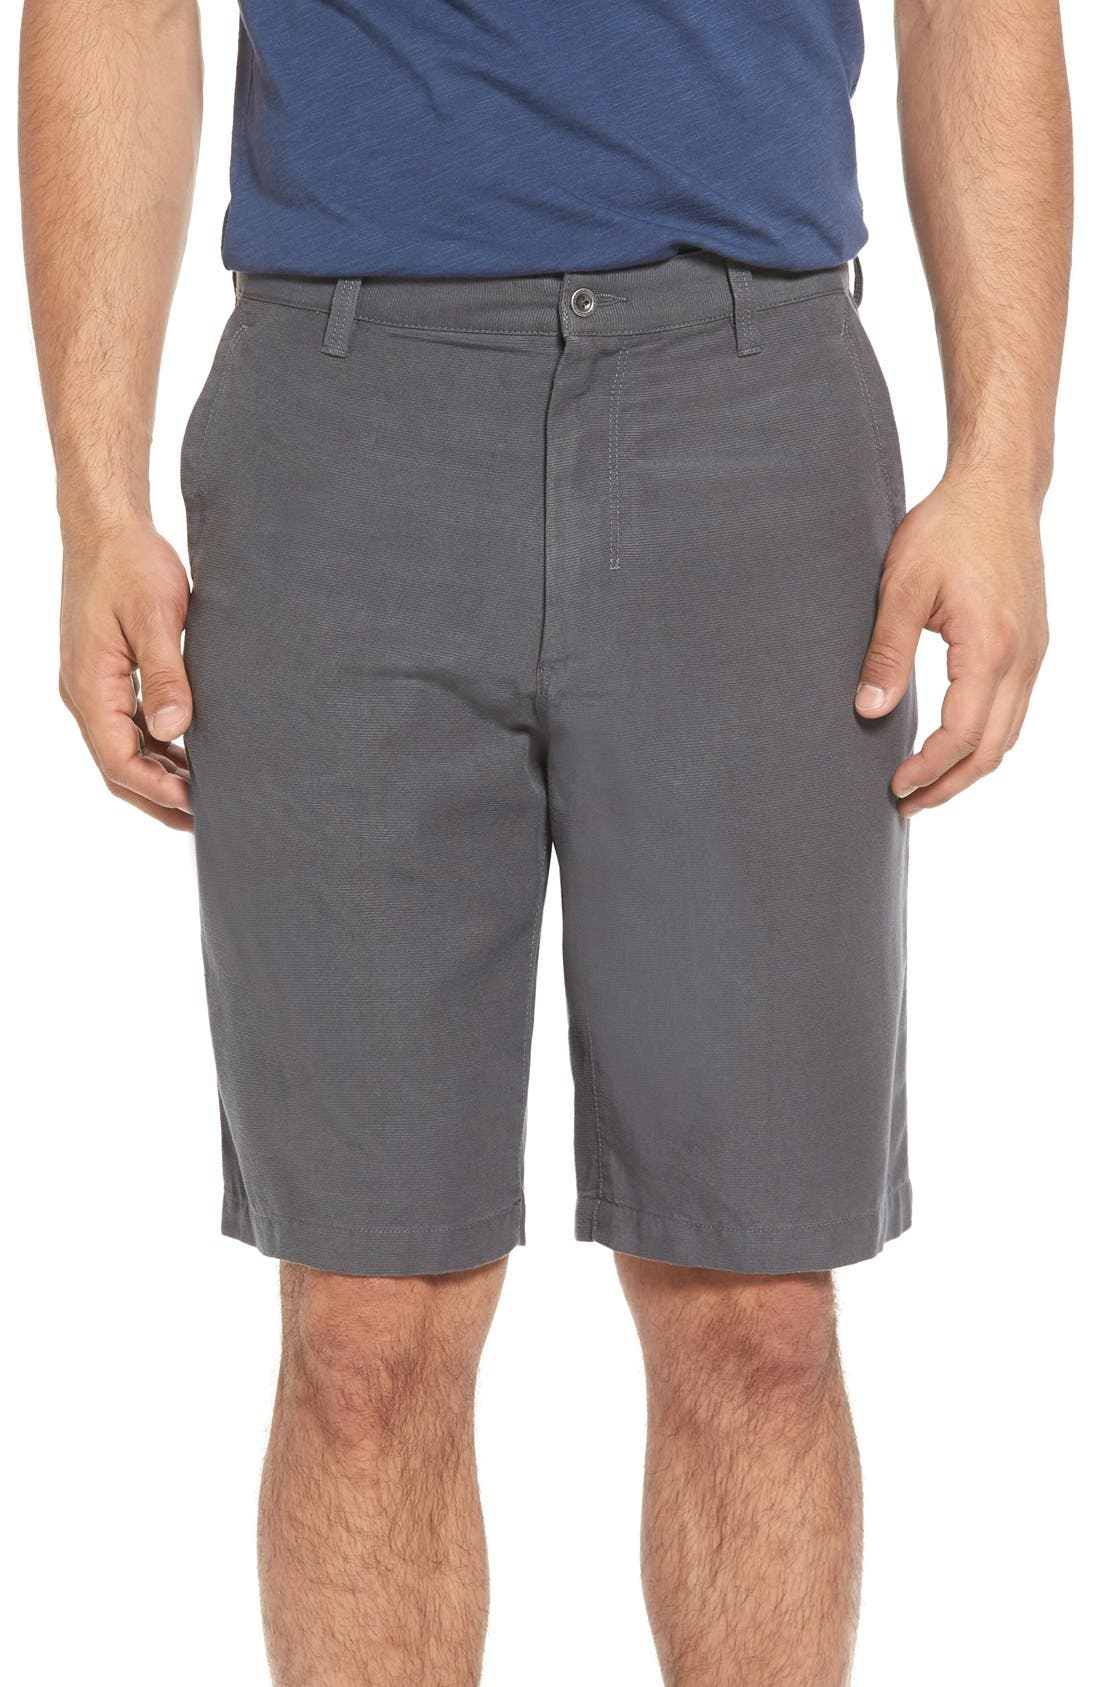 Alternate Image 1 Selected - Tommy Bahama 'Surfclub' Shorts